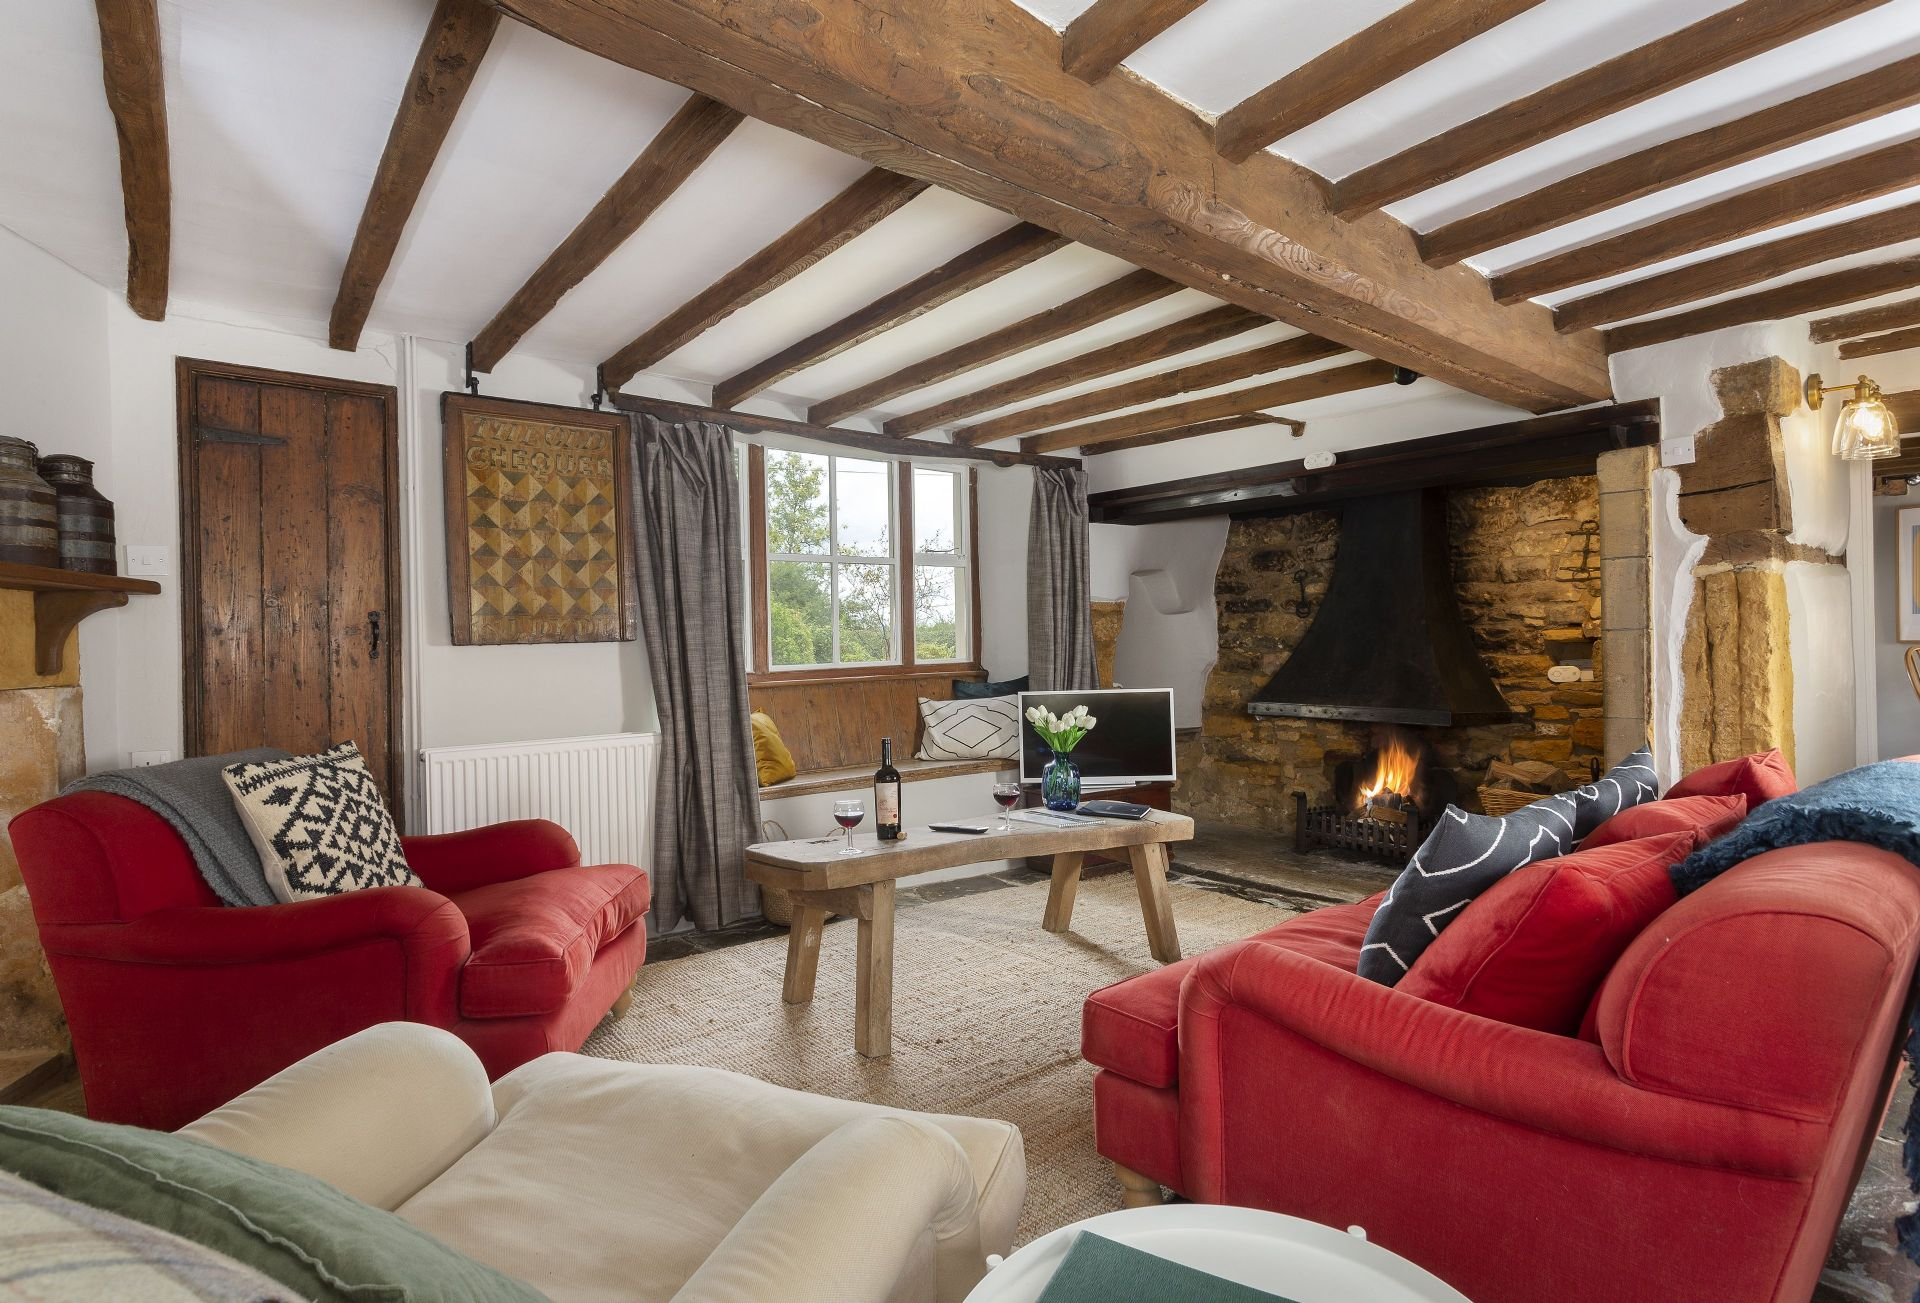 More information about The Old Chequer - ideal for a family holiday